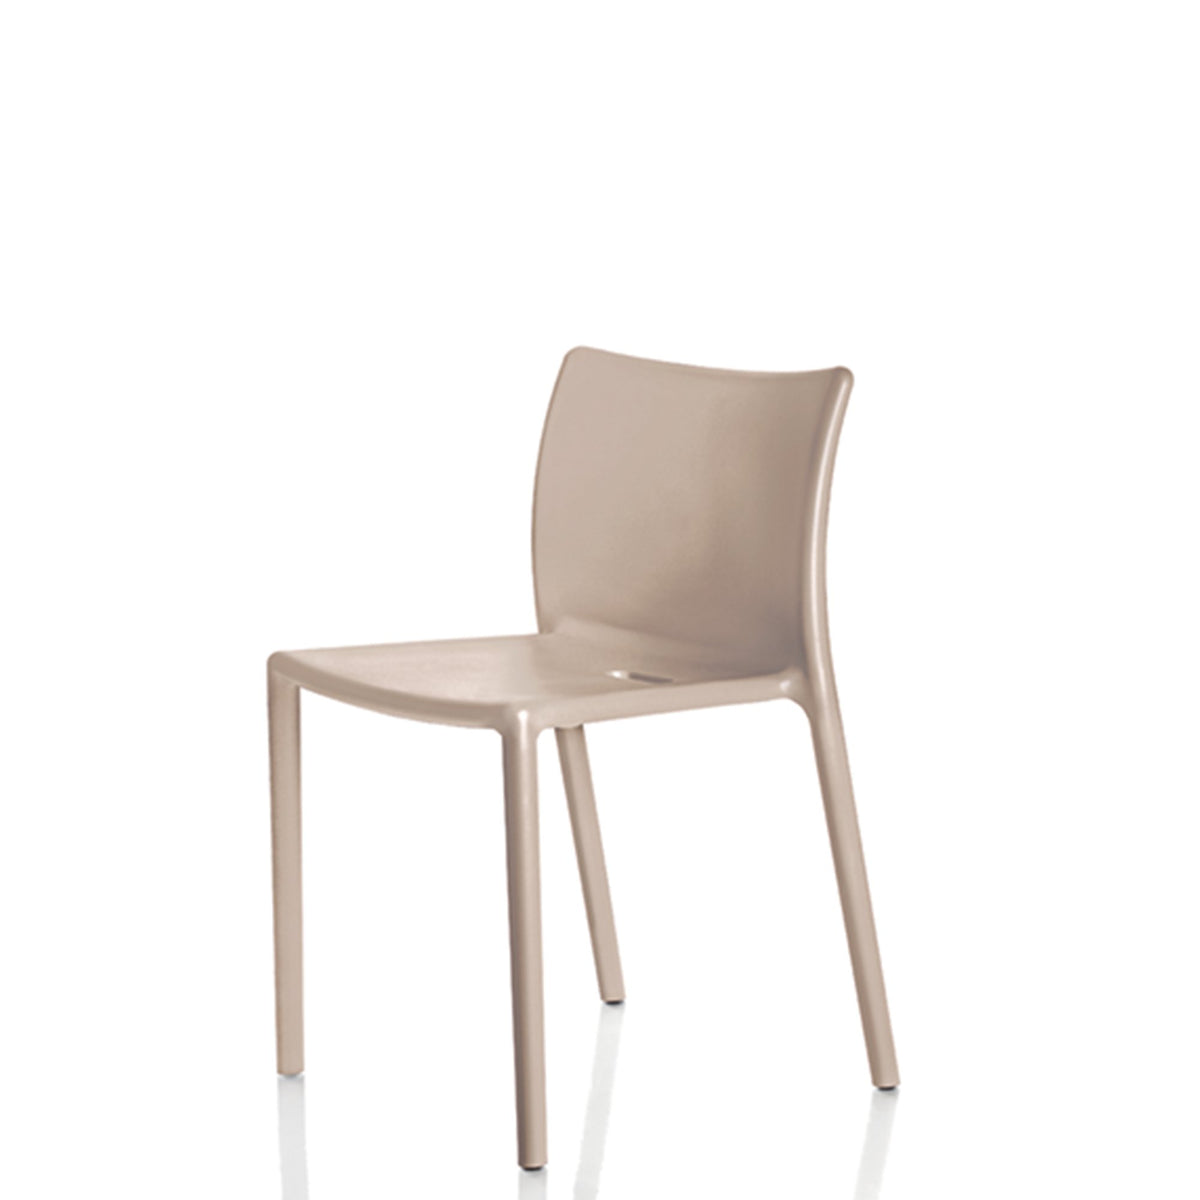 Magis - Air Chair by Jasper Morrison - Set of Four - Beige